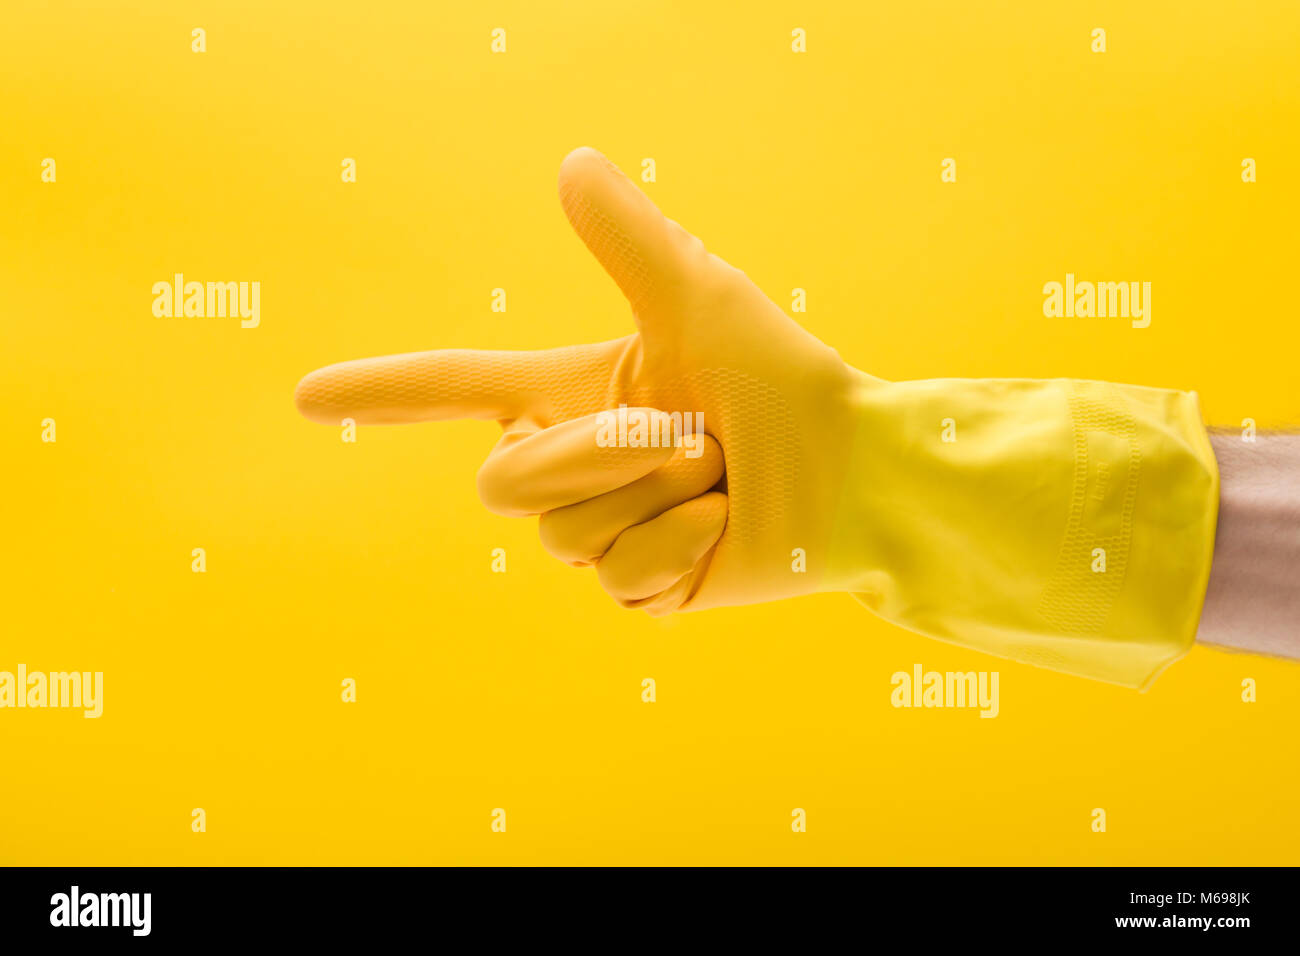 Pointing hand gesture made by a hand in a yellow rubber cleaning glove - Stock Image